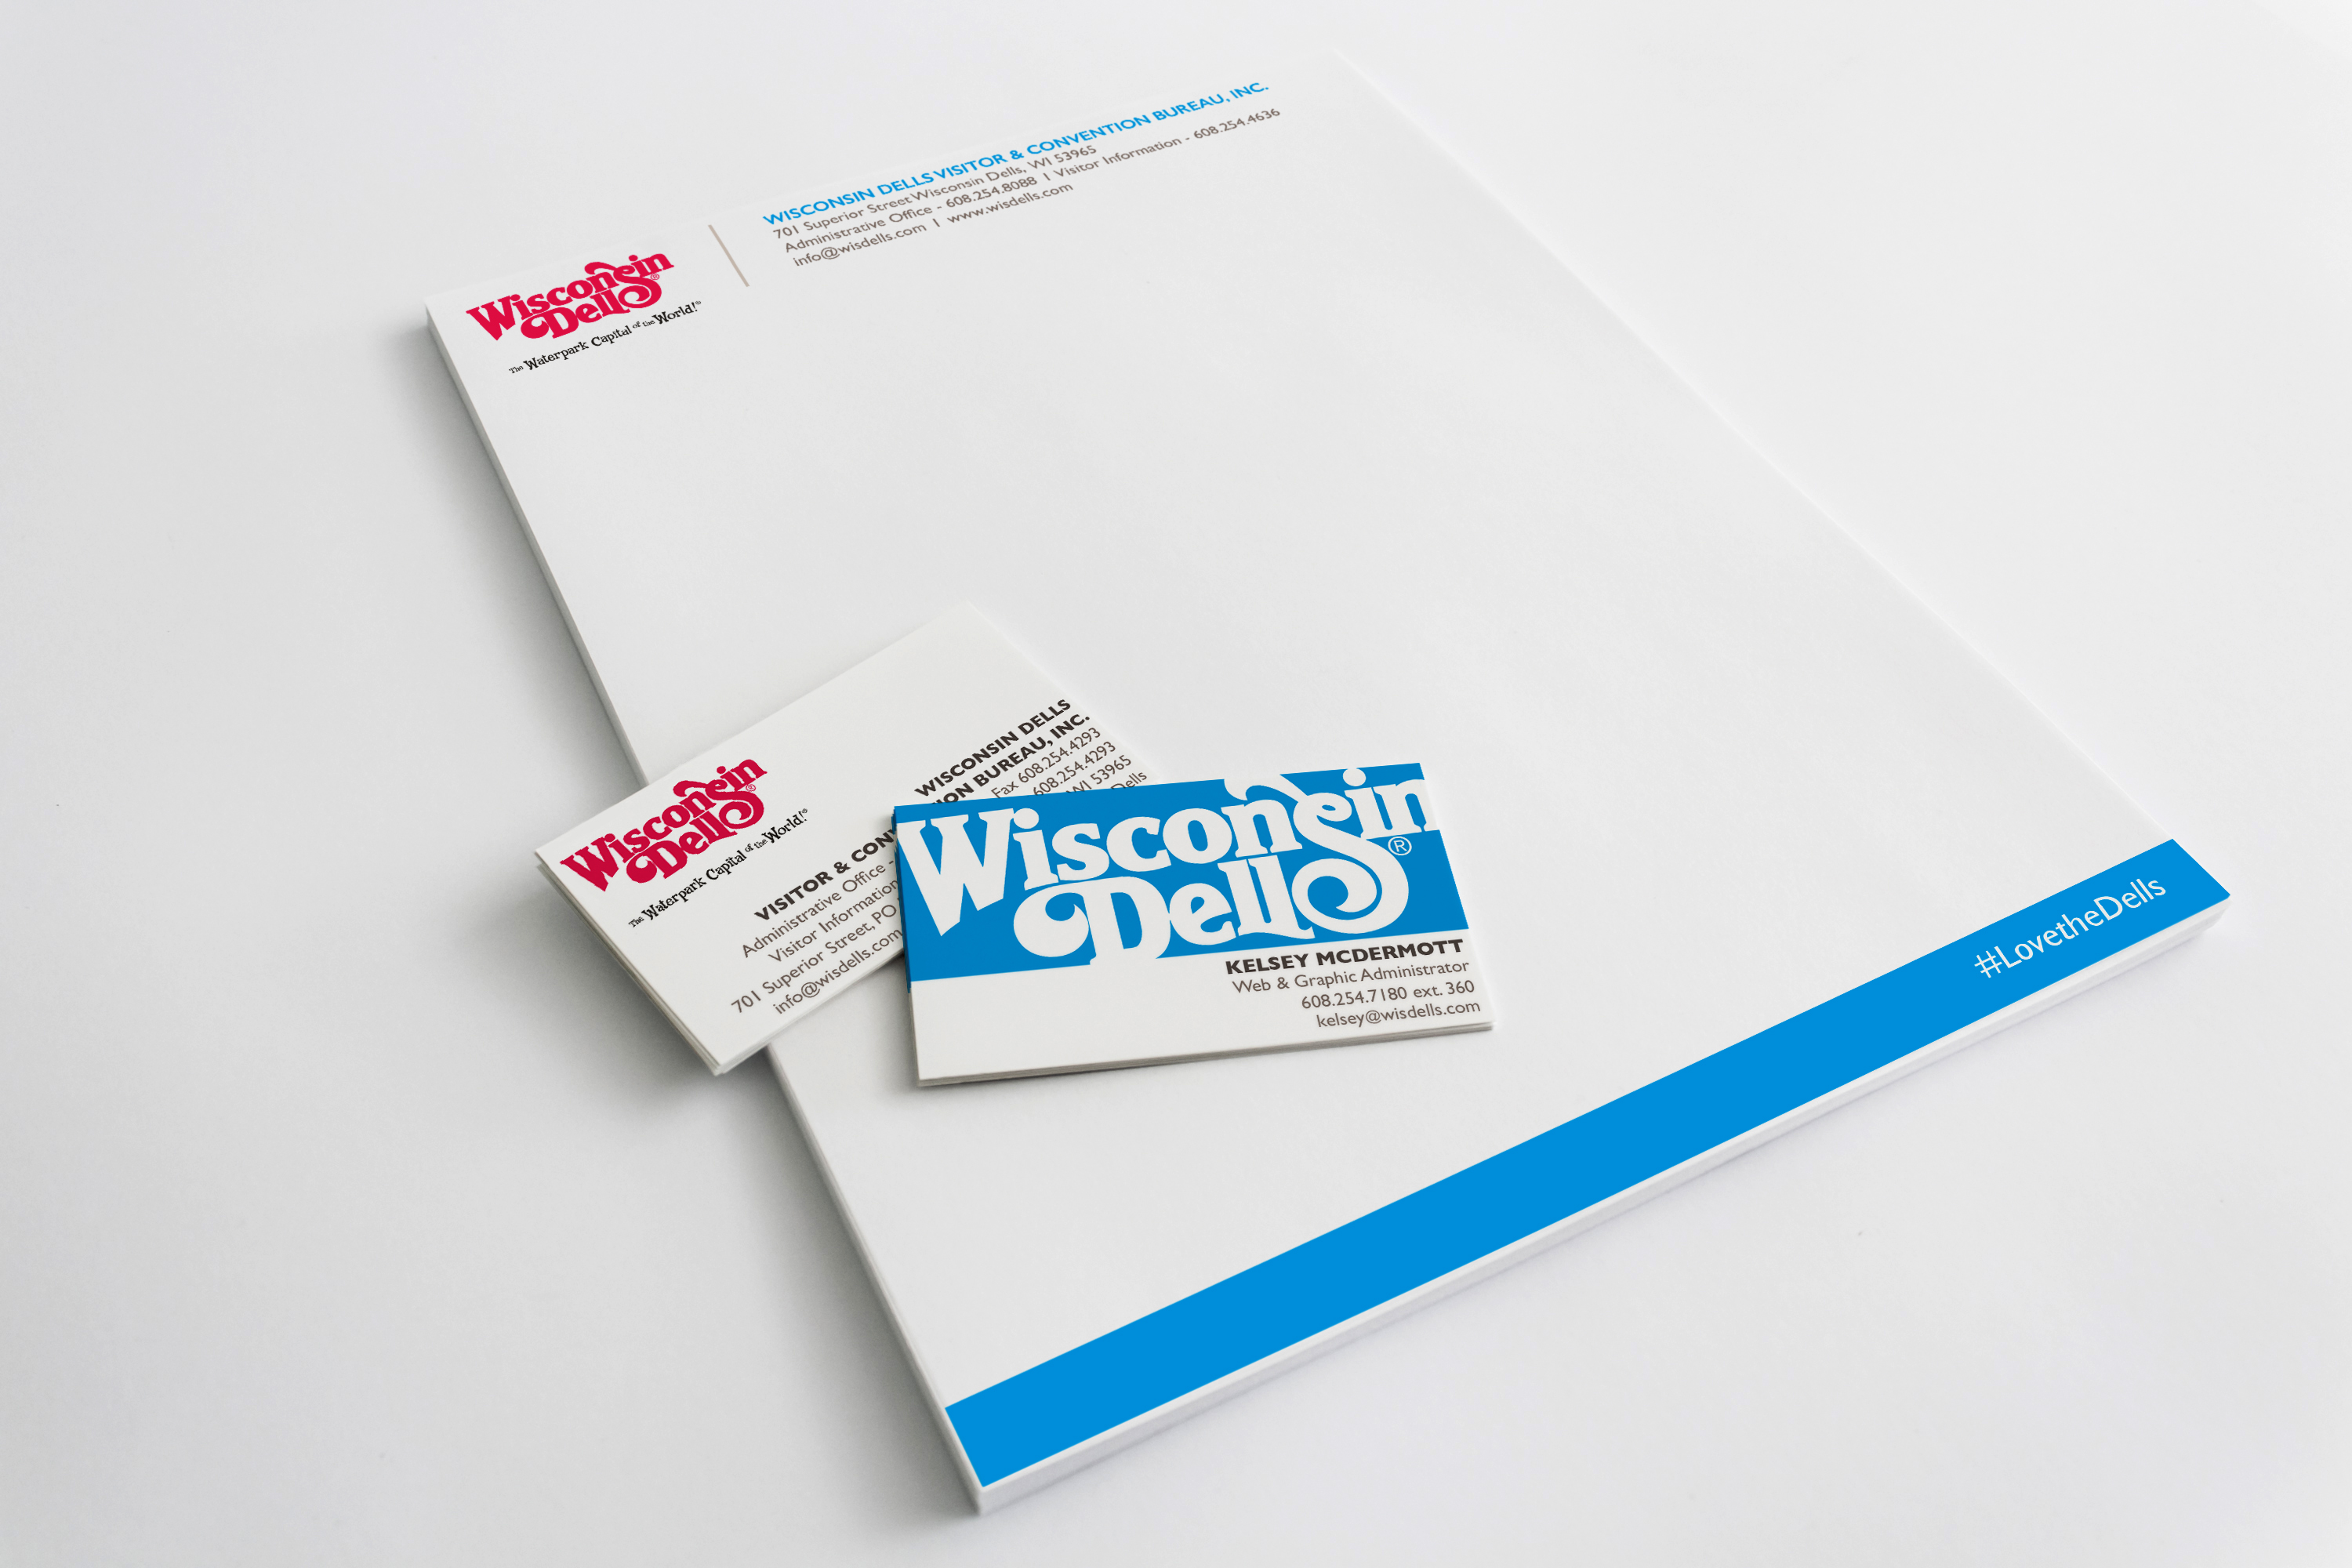 WDVCB Business Cards & Letterhead « Kelsey McDermott